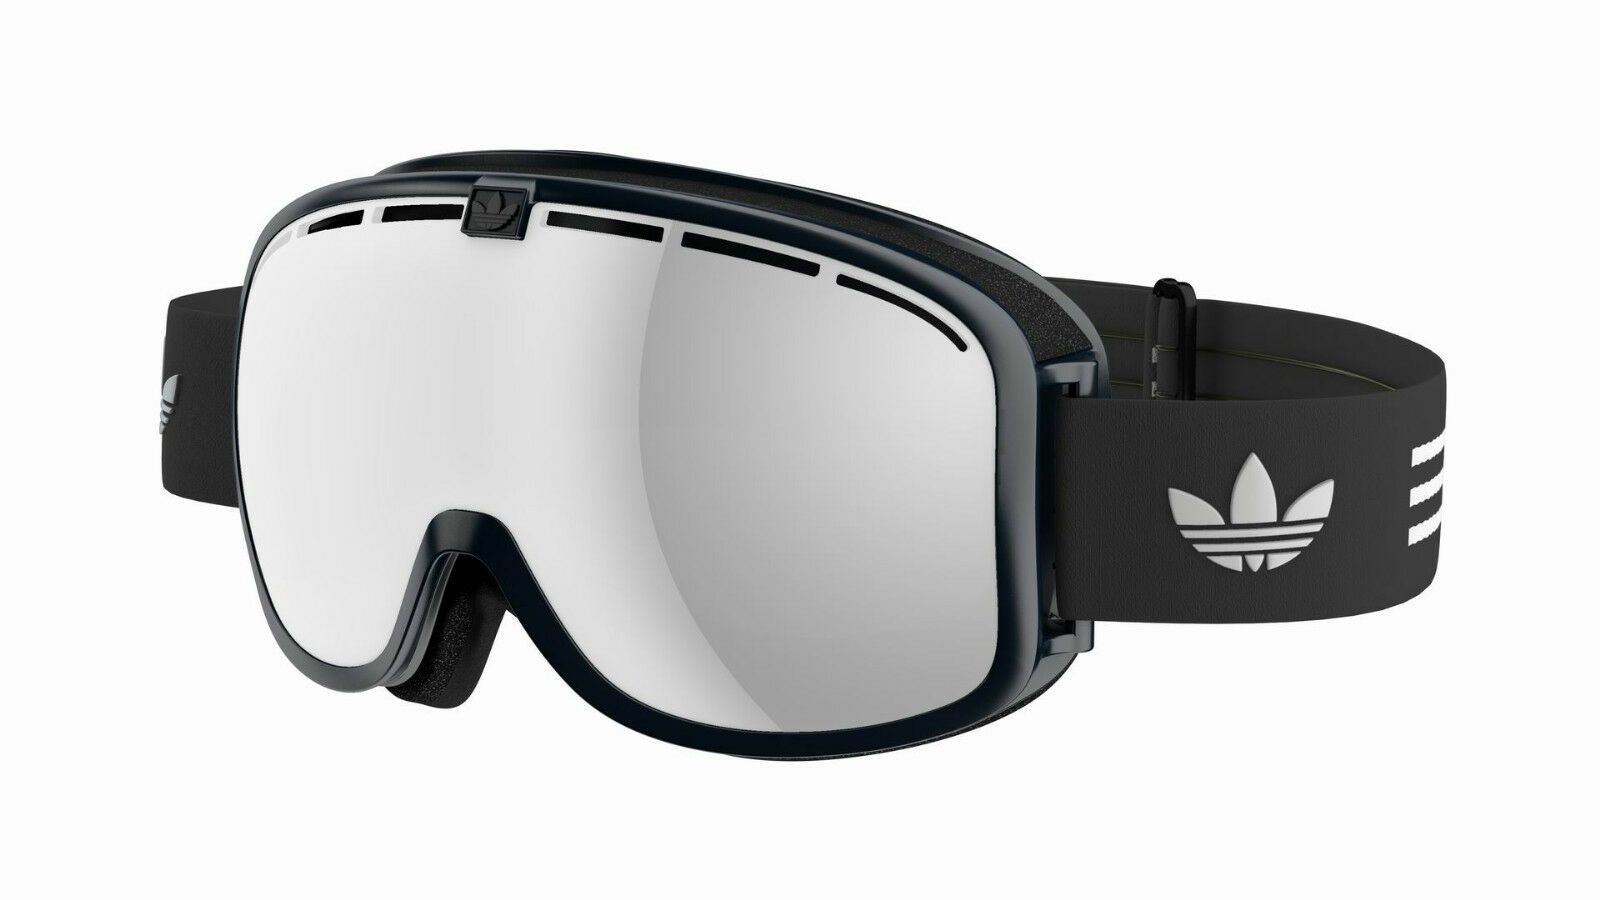 Adidas Originals Goggles  Model ah80 also in your prescription  after-sale protection